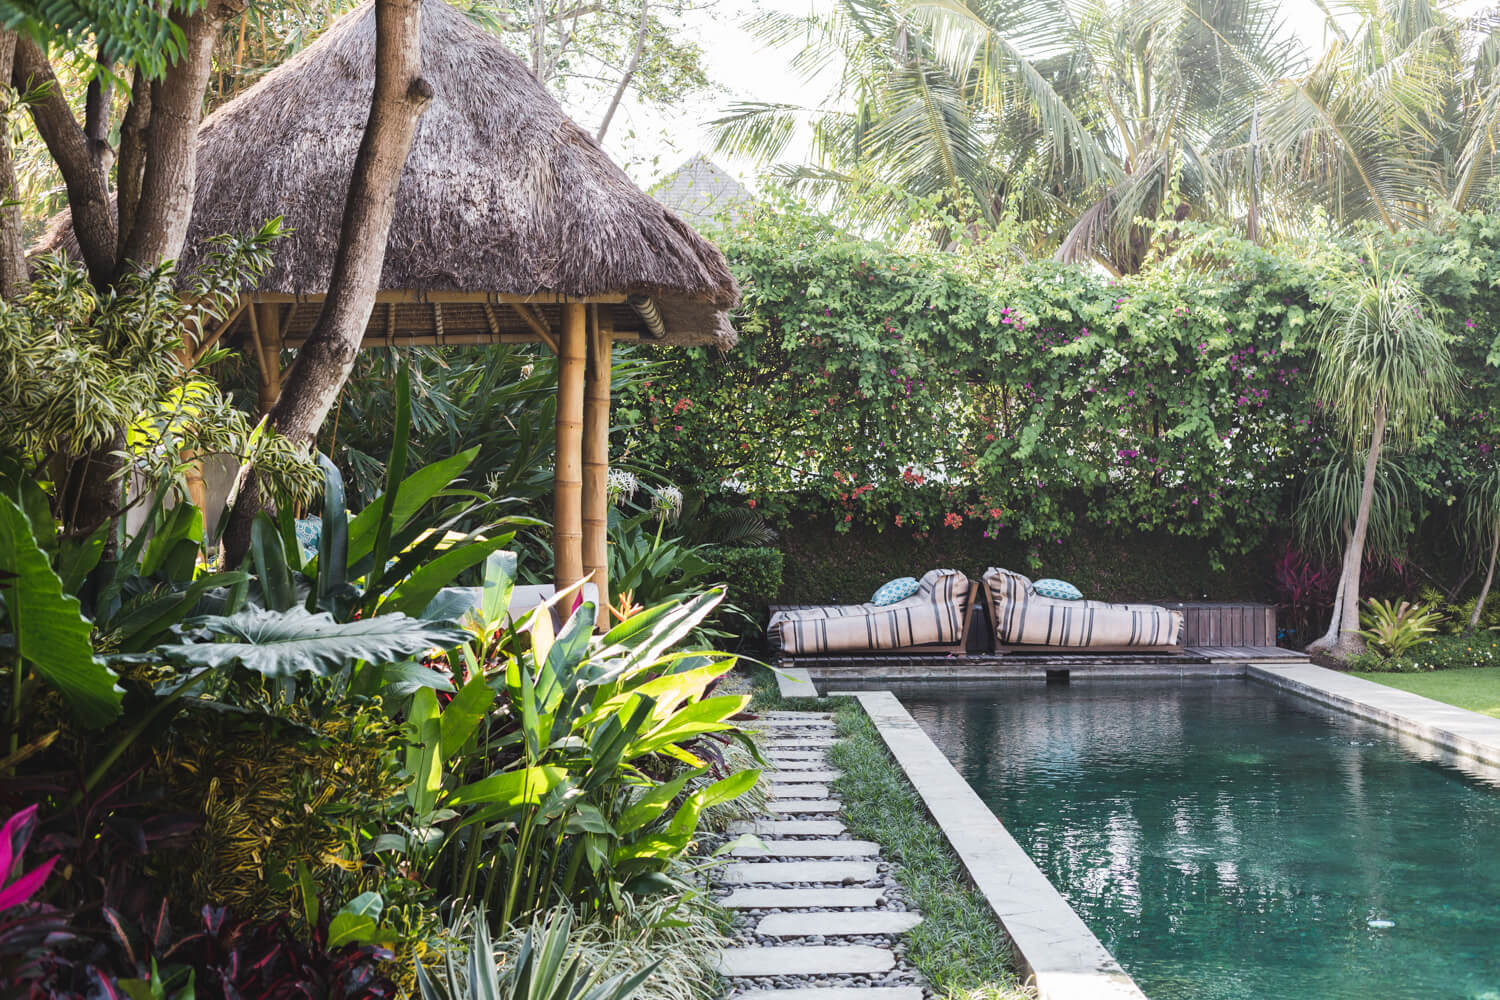 Poolside view at The Place Retreats Bali